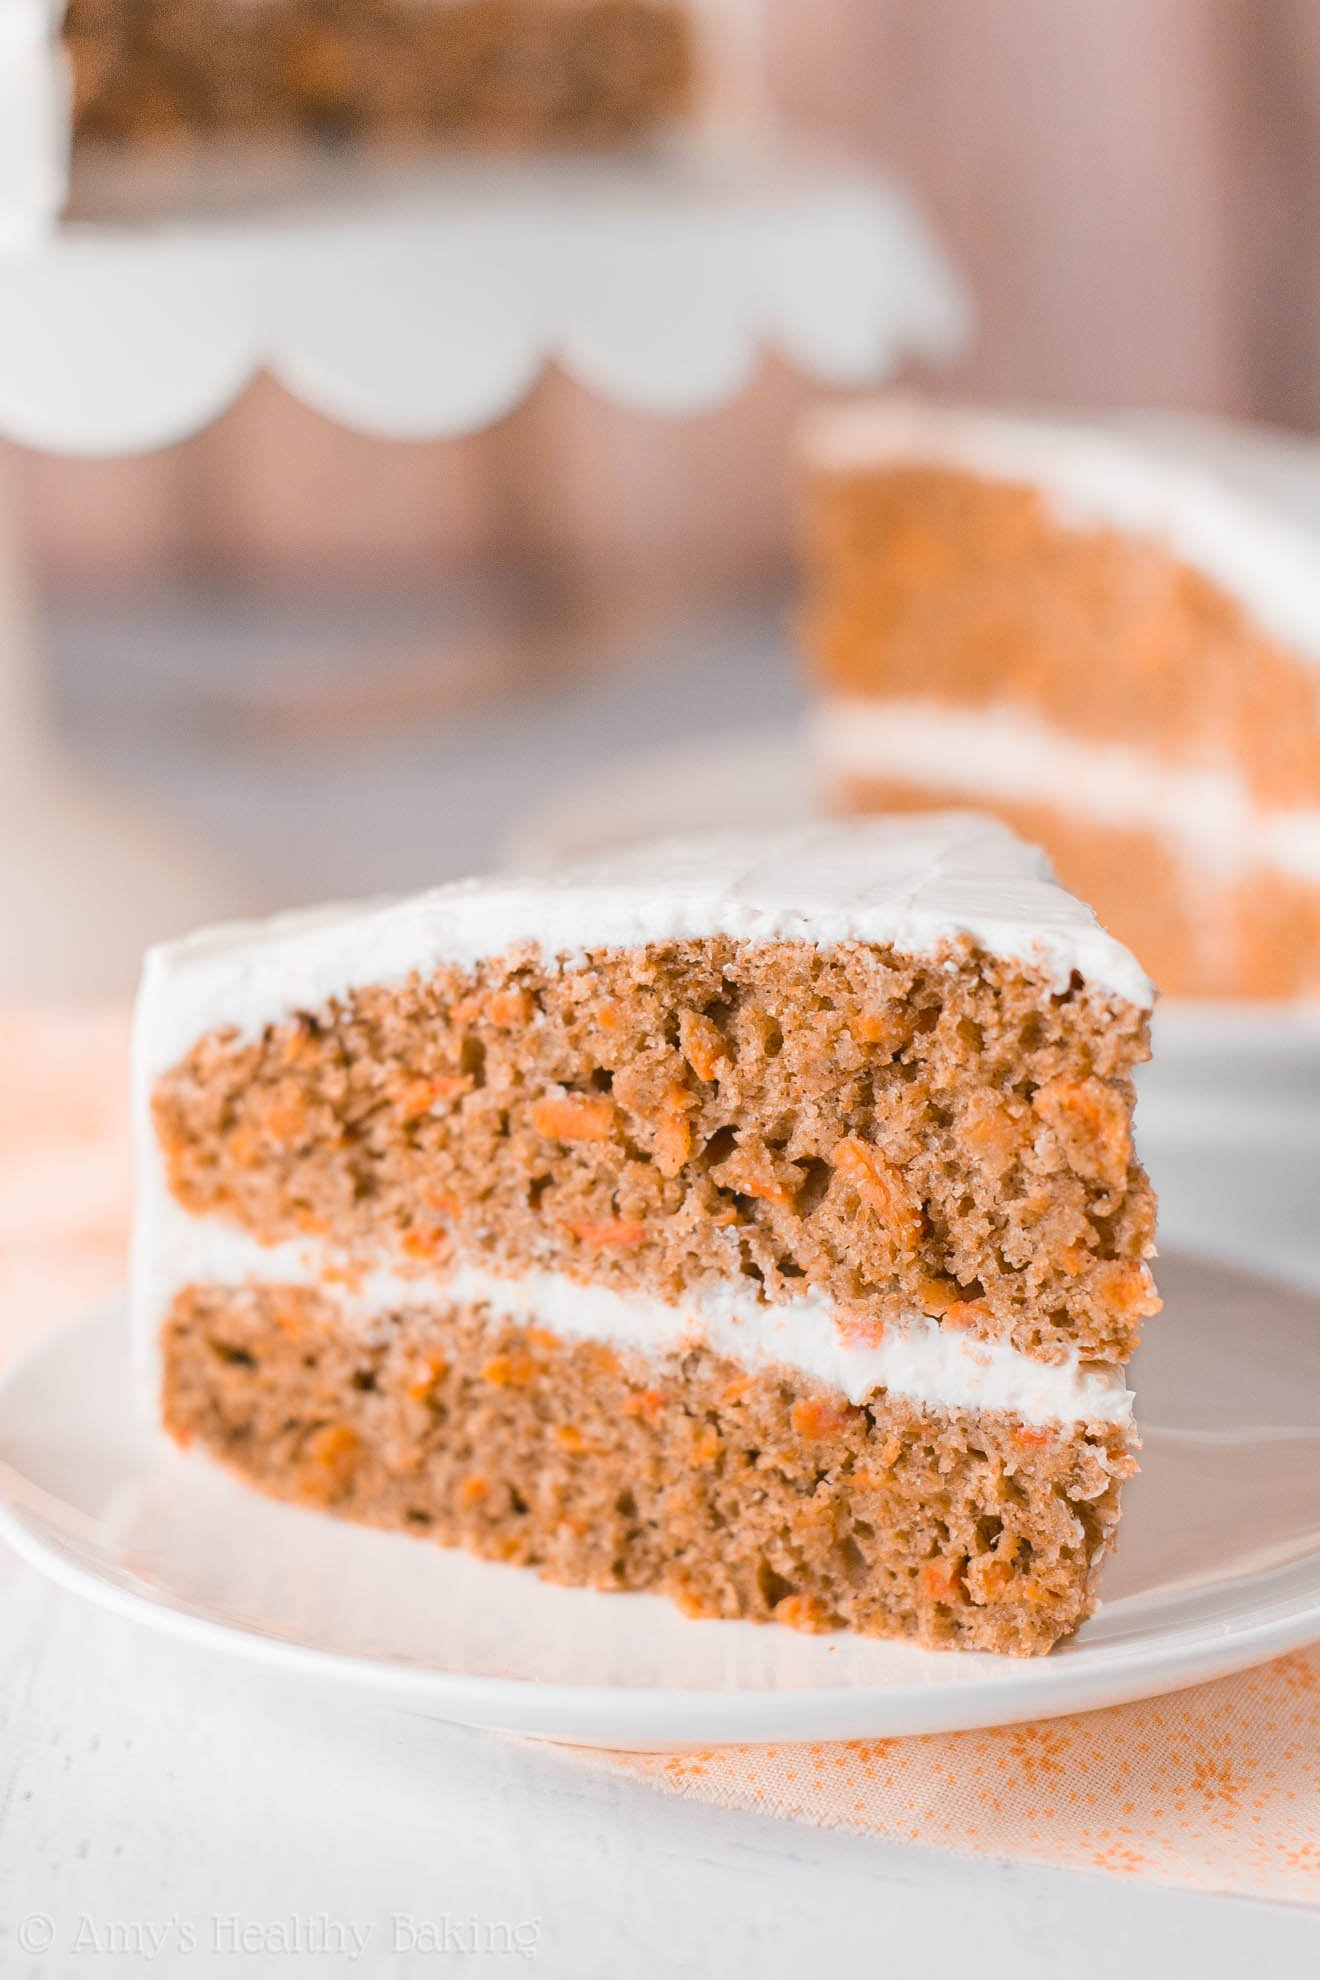 Carrot snacking cake recipe